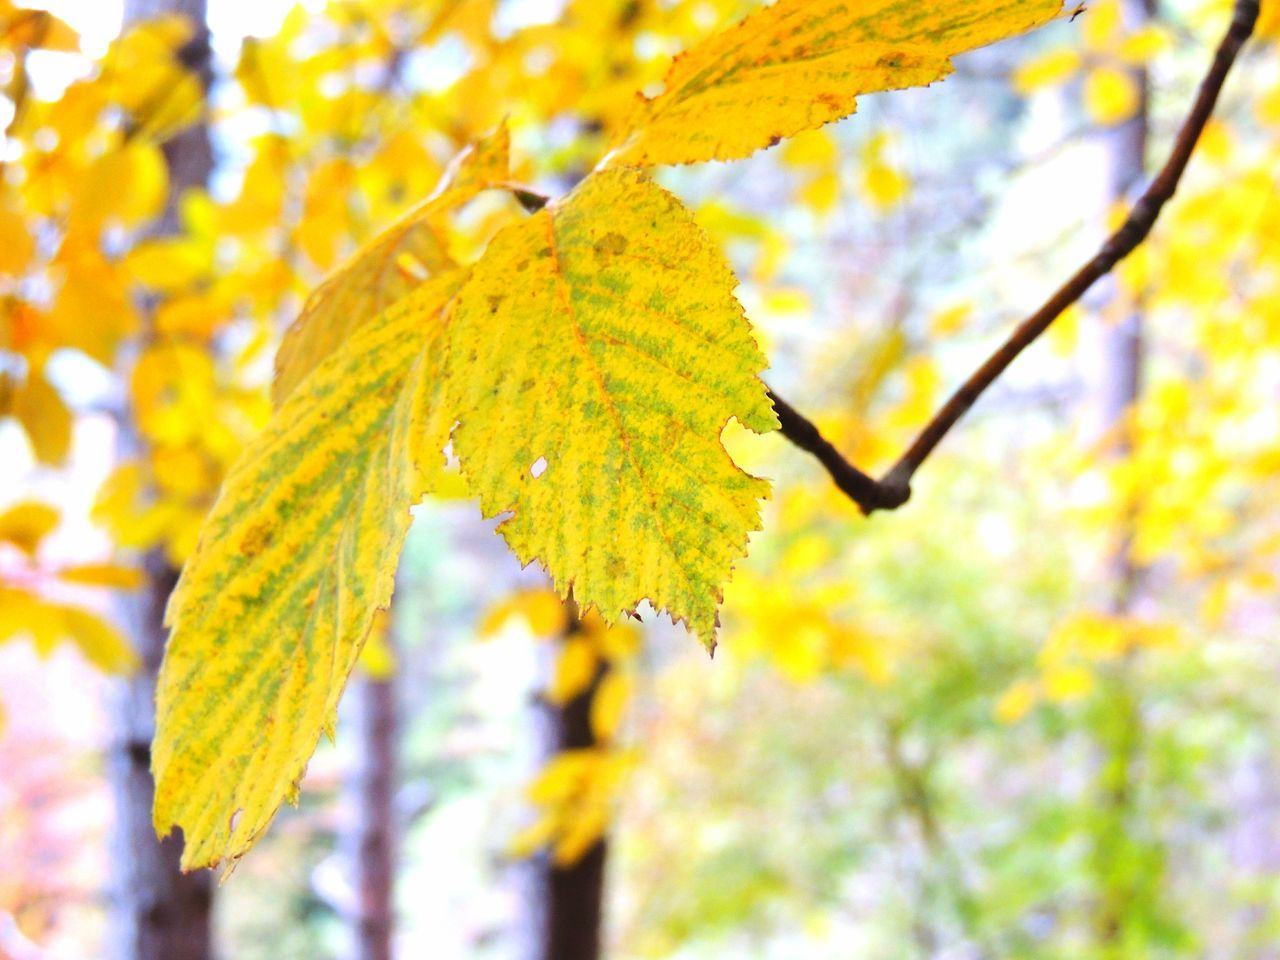 Animal Themes Autumn Beauty In Nature Branch Change Close-up Day Focus On Foreground Fragility Growth Leaf Low Angle View Nature No People Outdoors Tree Yellow Autumn Colours Autumn🍁🍁🍁 Autumn Colors Leafs. Leafscape Leafs Leafs Colors Leafs Photography